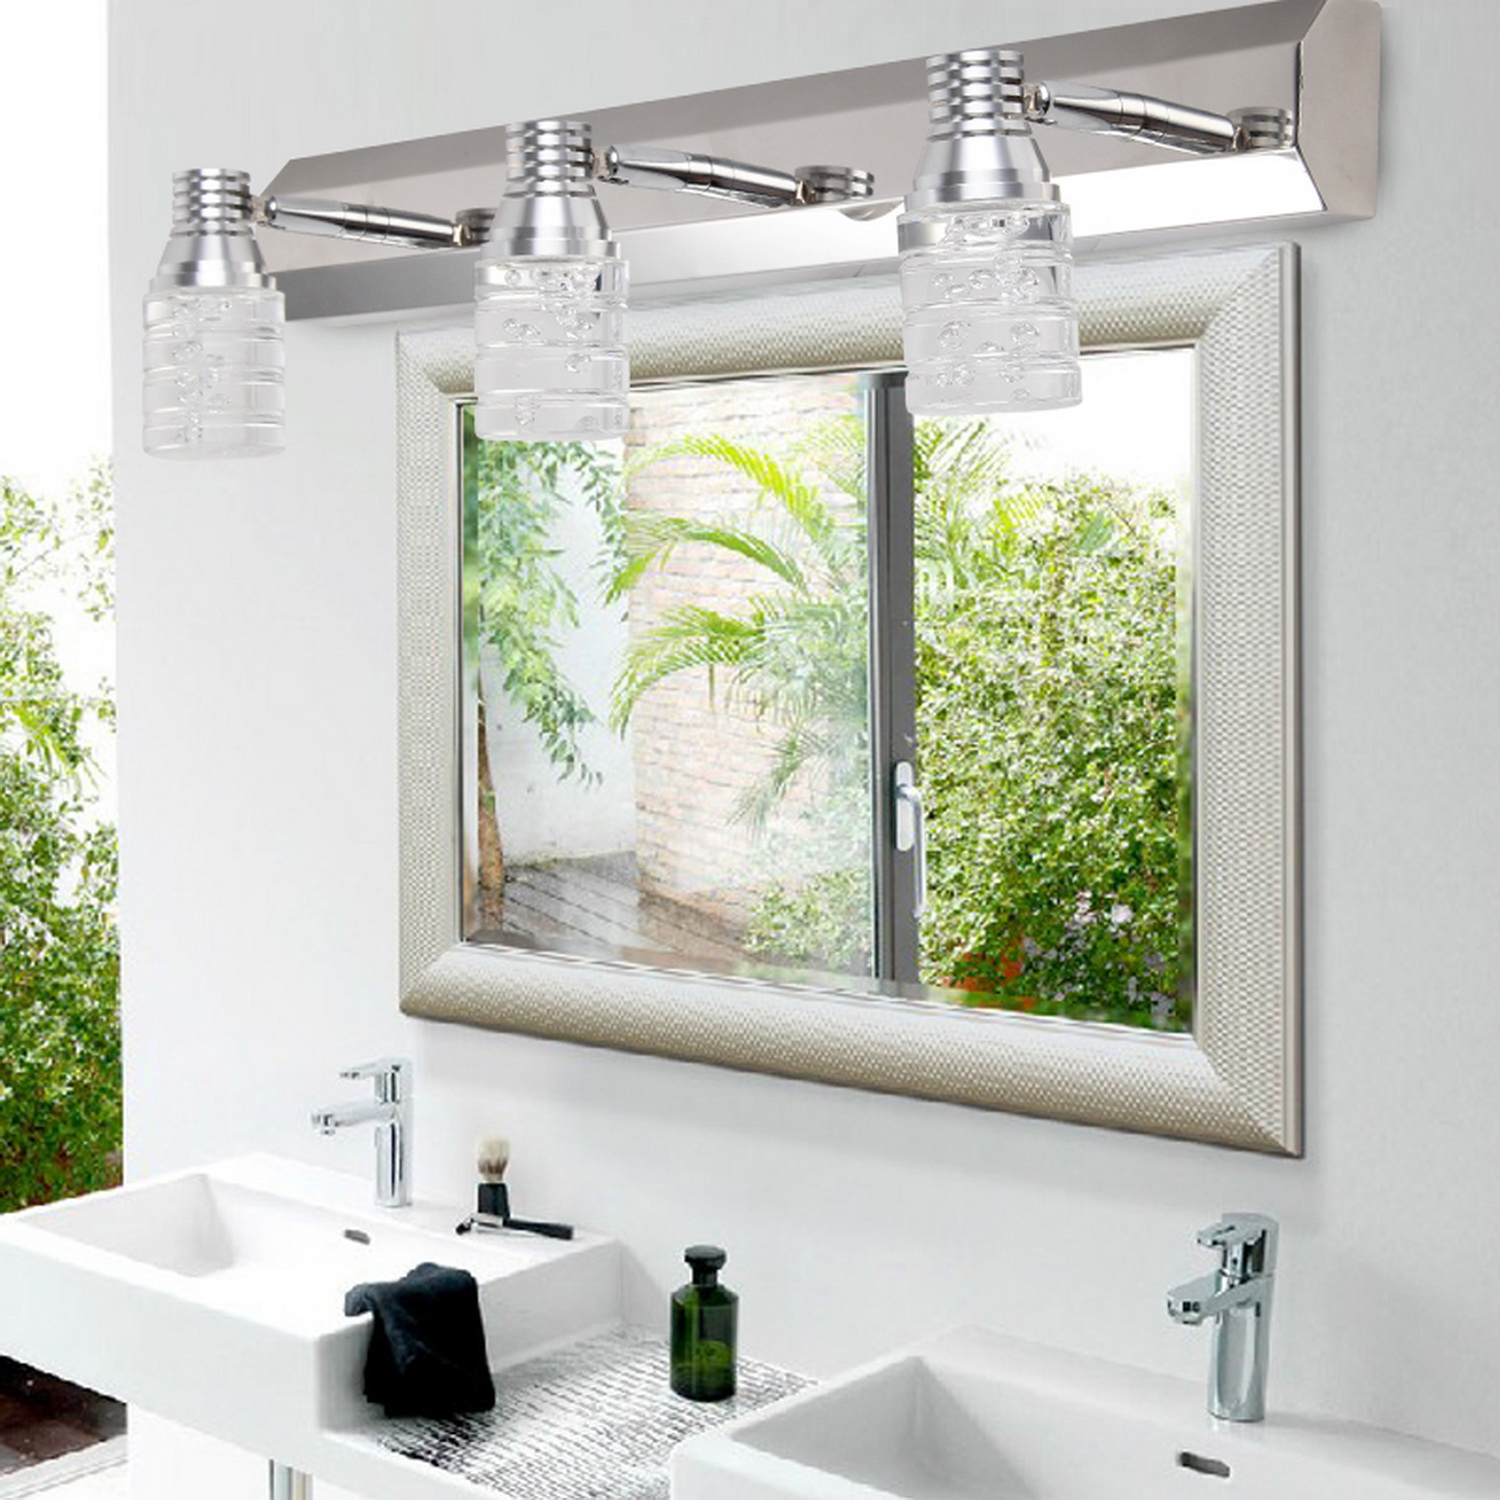 Modern Wall Light For Bathroom: Modern Crystal Mirror Bathroom Vanity Light 6W Wall